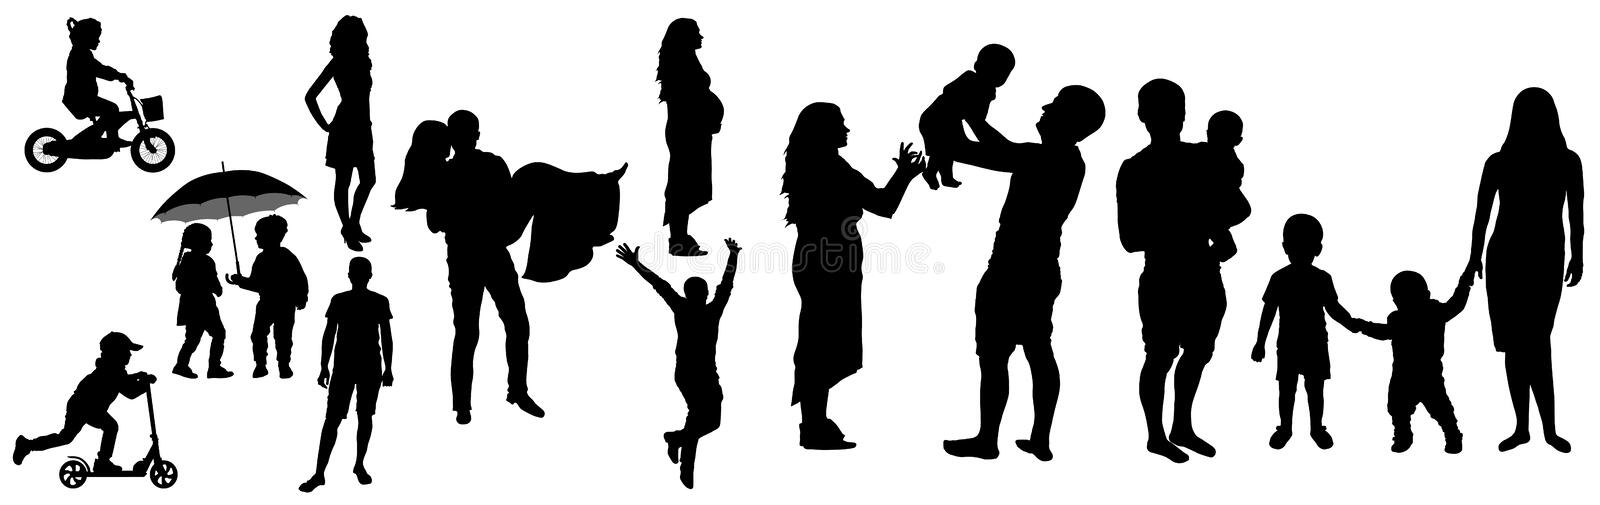 Lifetime of man and woman with childhood to adult family life silhouette, vector illustration. Childhood, appointment, then wedding day, then pregnancy, then stock illustration